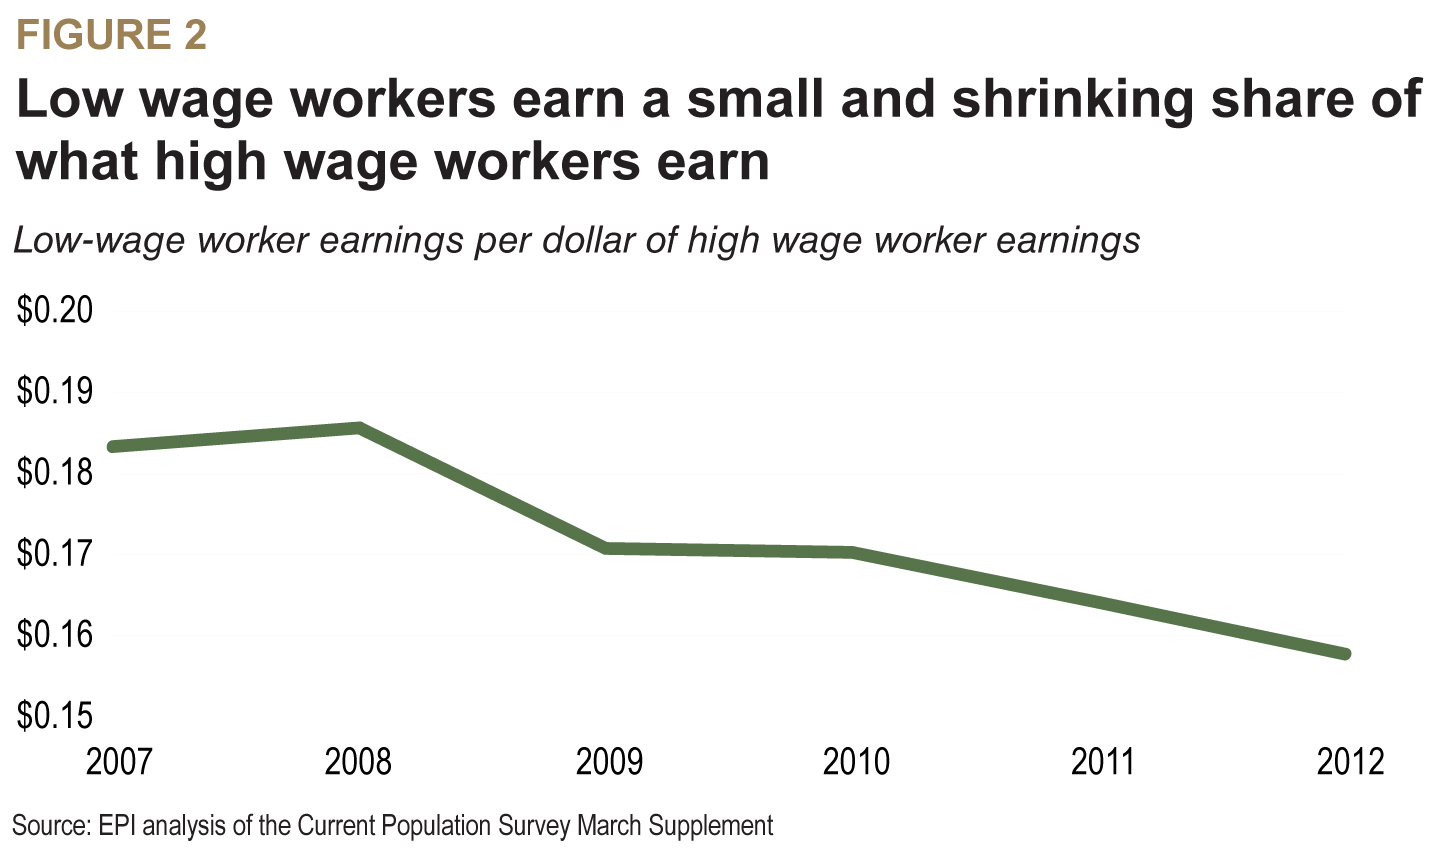 the challenge of increasing employee wages without sacrificing profit This efficiency wage is intended to discourage workers from shirking at work, increase employee morale and productivity, reduce employee turnover, and increase the pool of qualified job candidates paying a wage rate above the market wage may achieve these purposes because it increases the opportunity cost of quitting or getting fired.